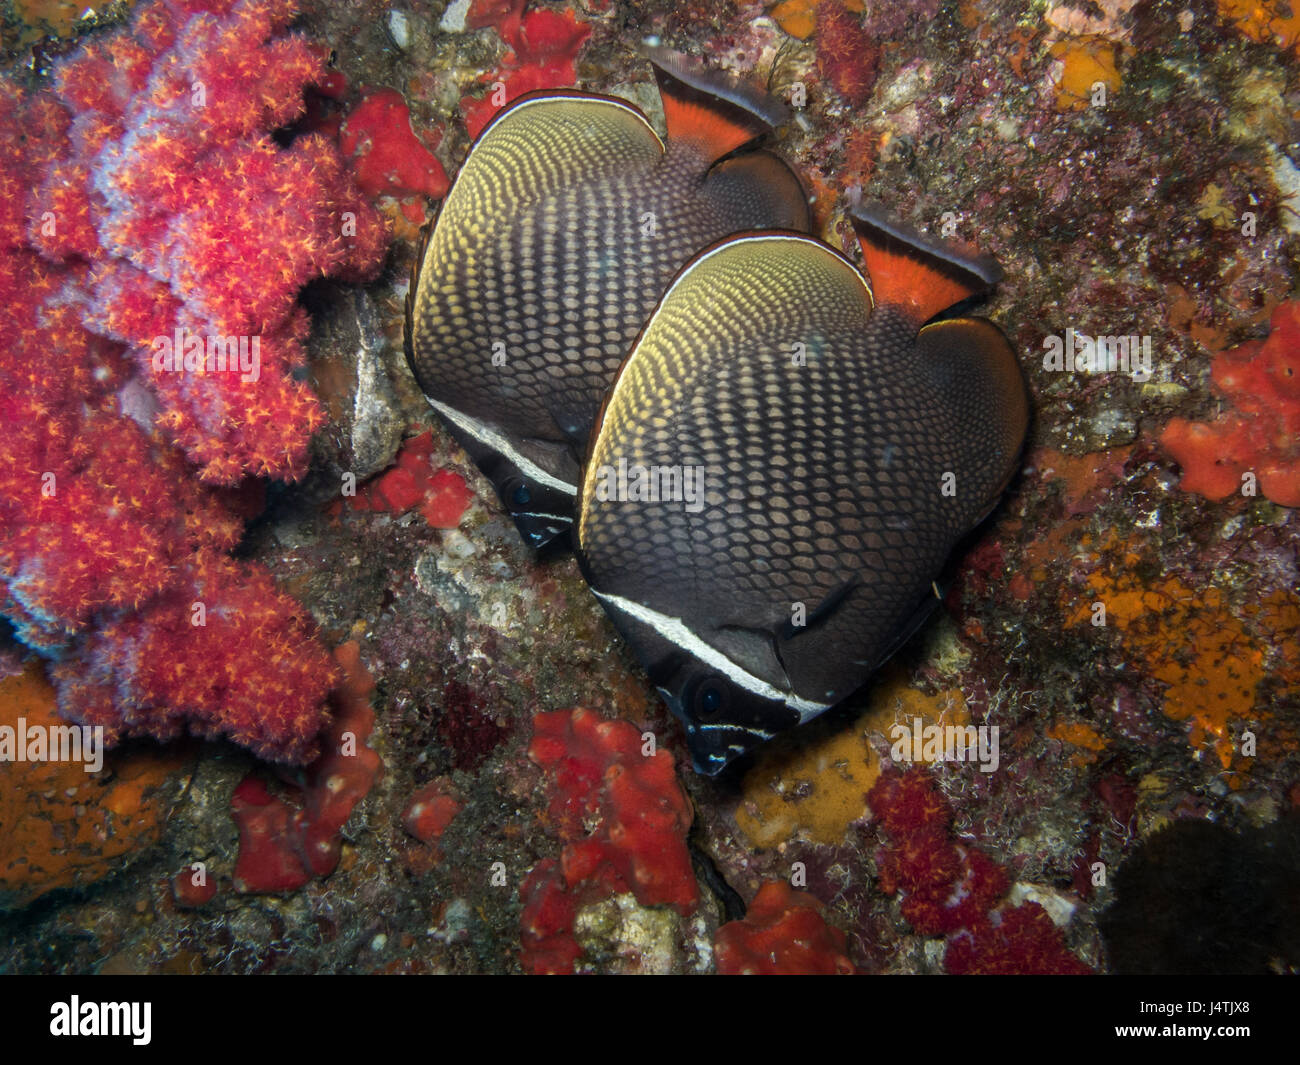 Collared Butterflyfish live together and swiming on coral - Stock Image